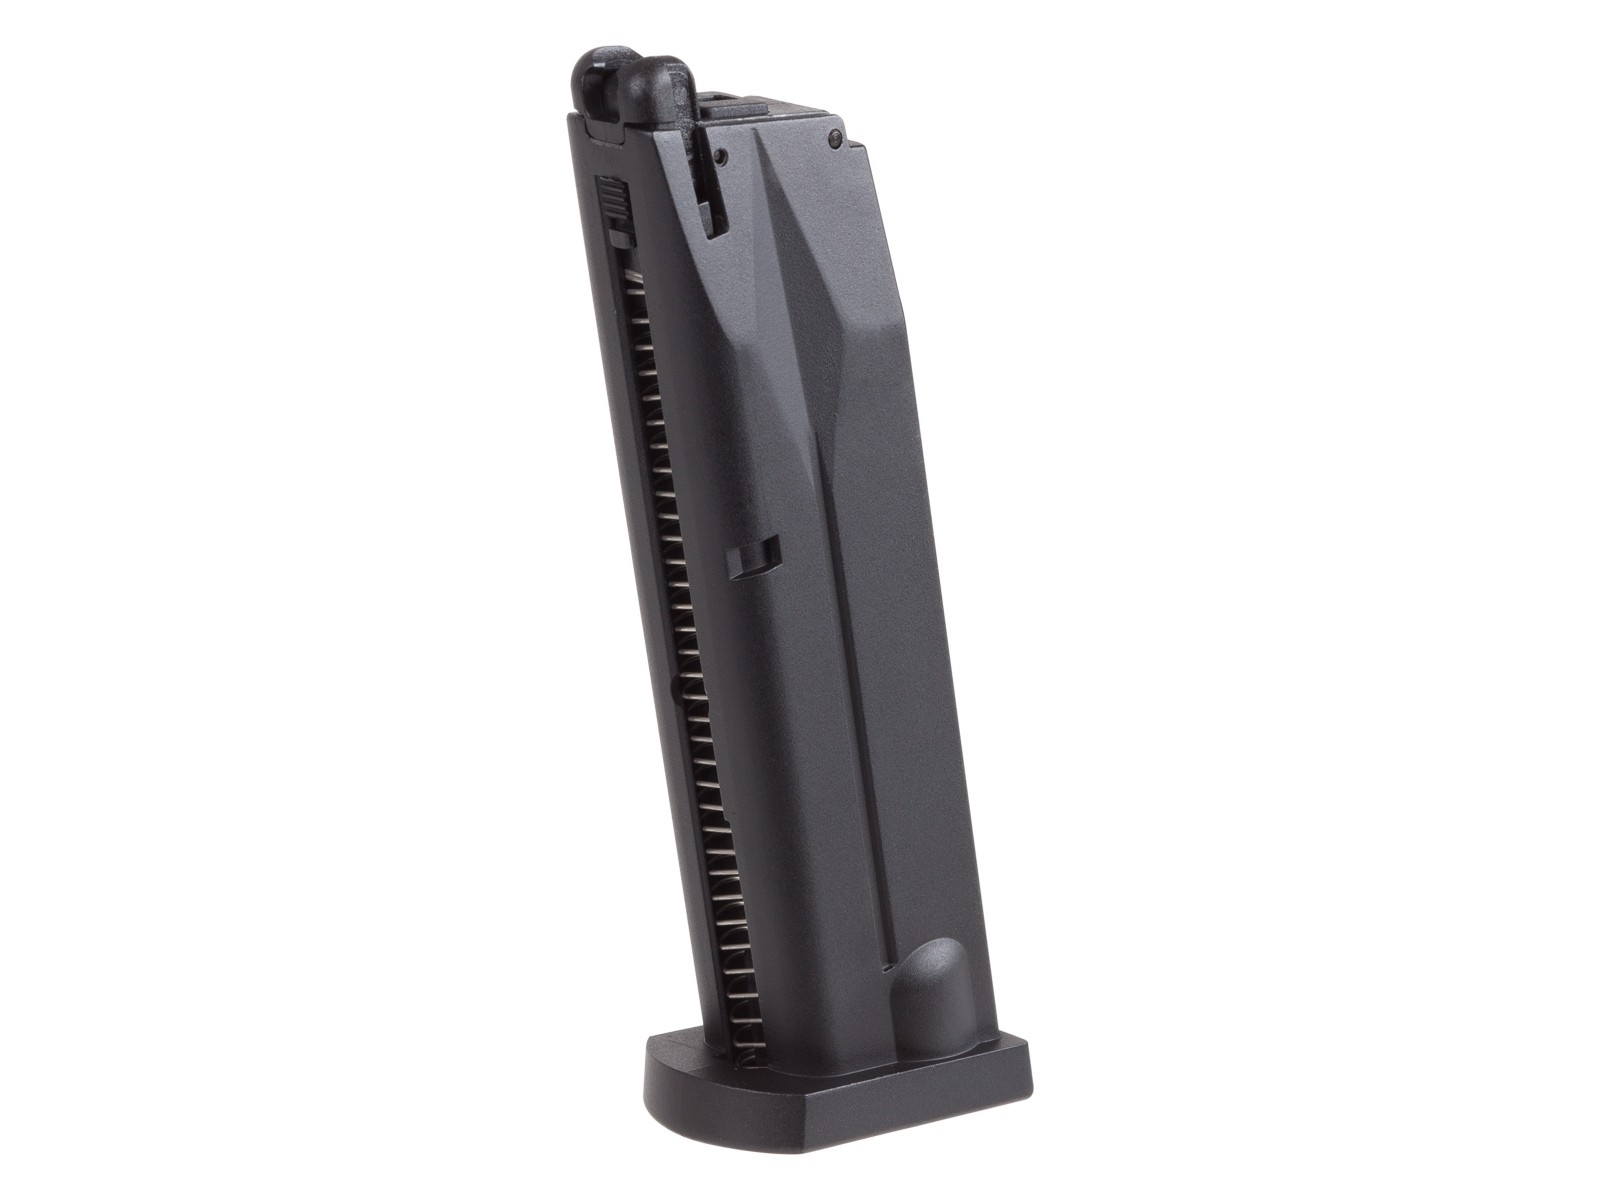 Umarex Beretta M92 Airsoft CO2 Magazine